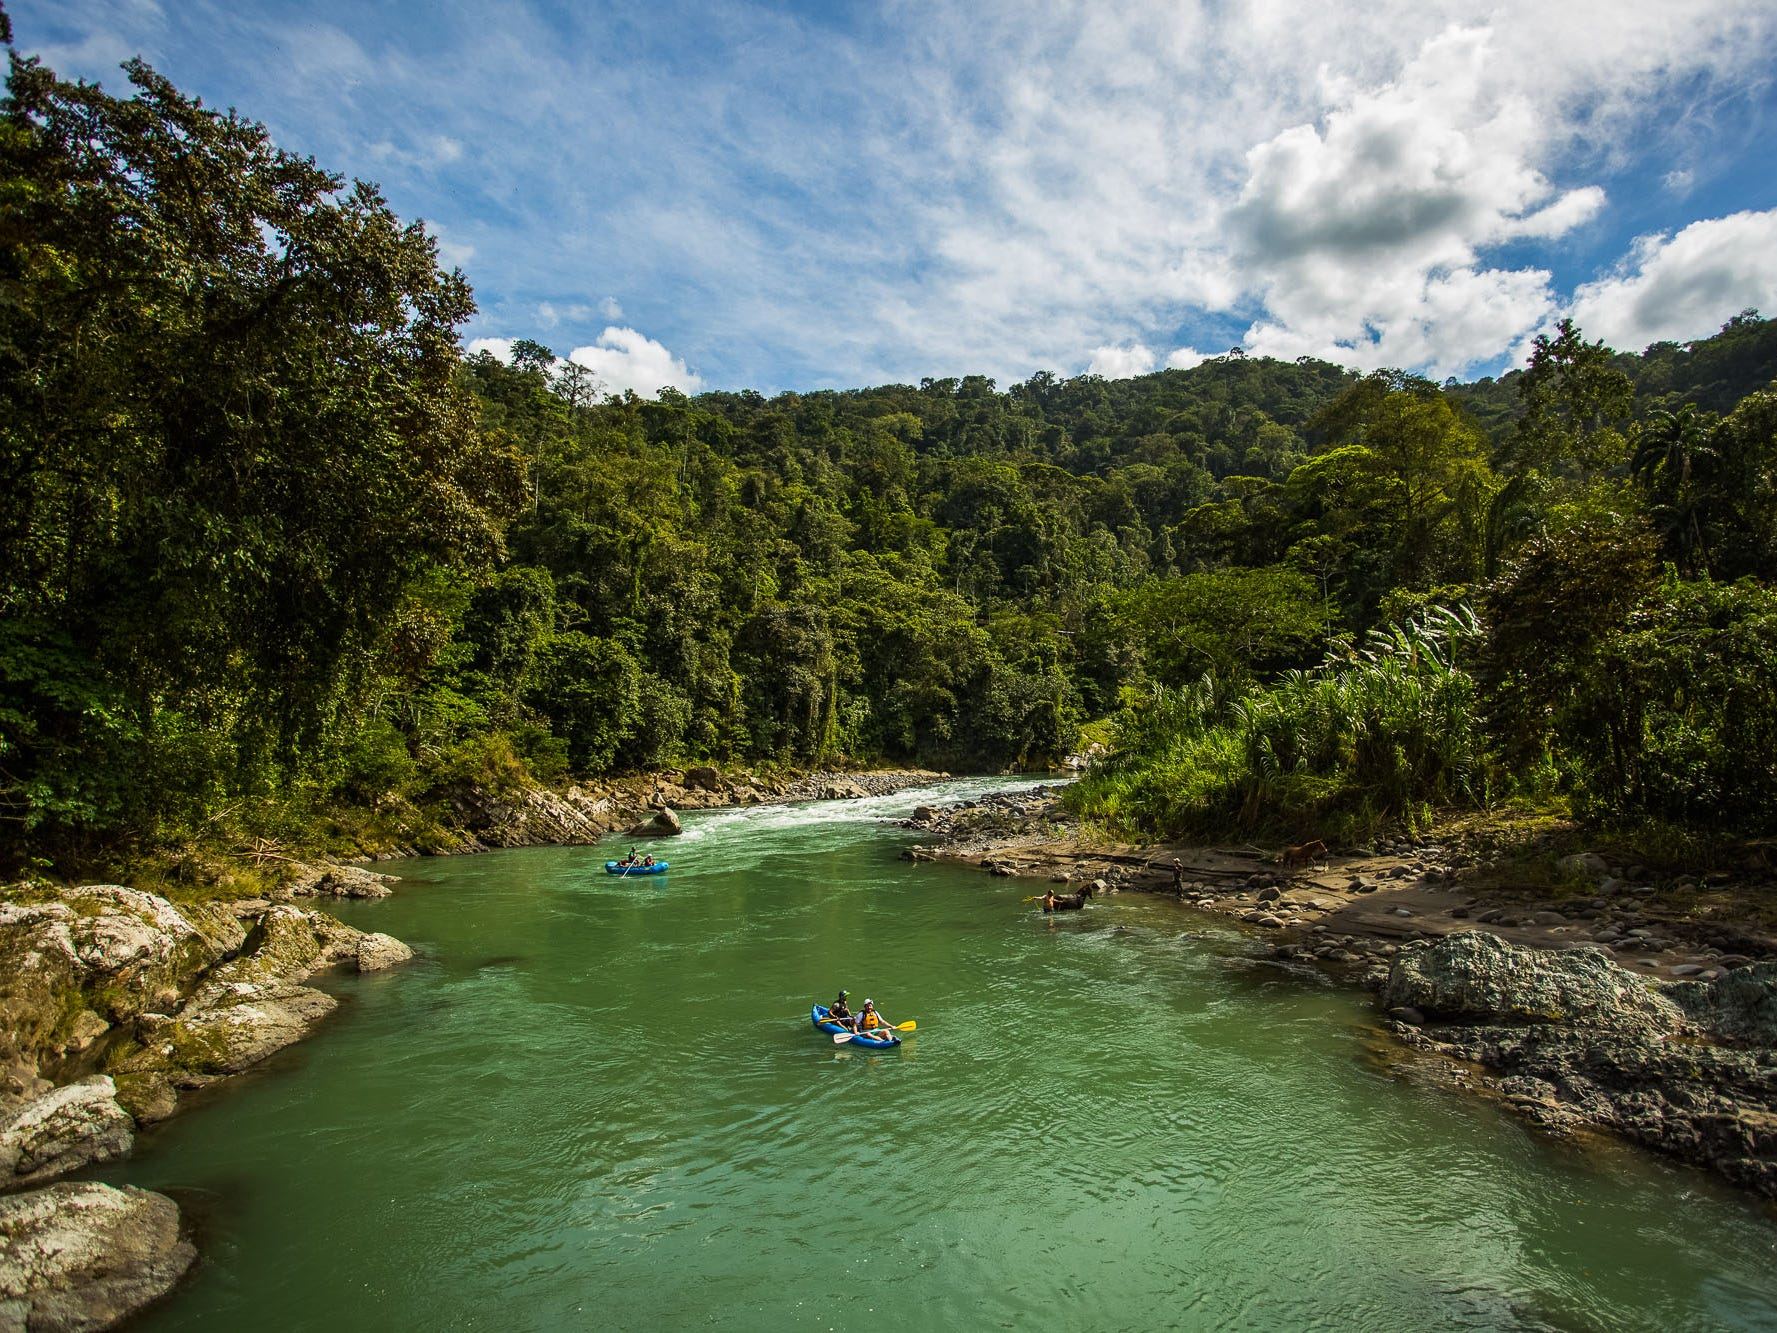 The Pacuare Lodge package includes transportation from San Jose, all meals and an impressive range of activities, such as a tropical canyoning tour, birdwatching excursion or waterfall hike.